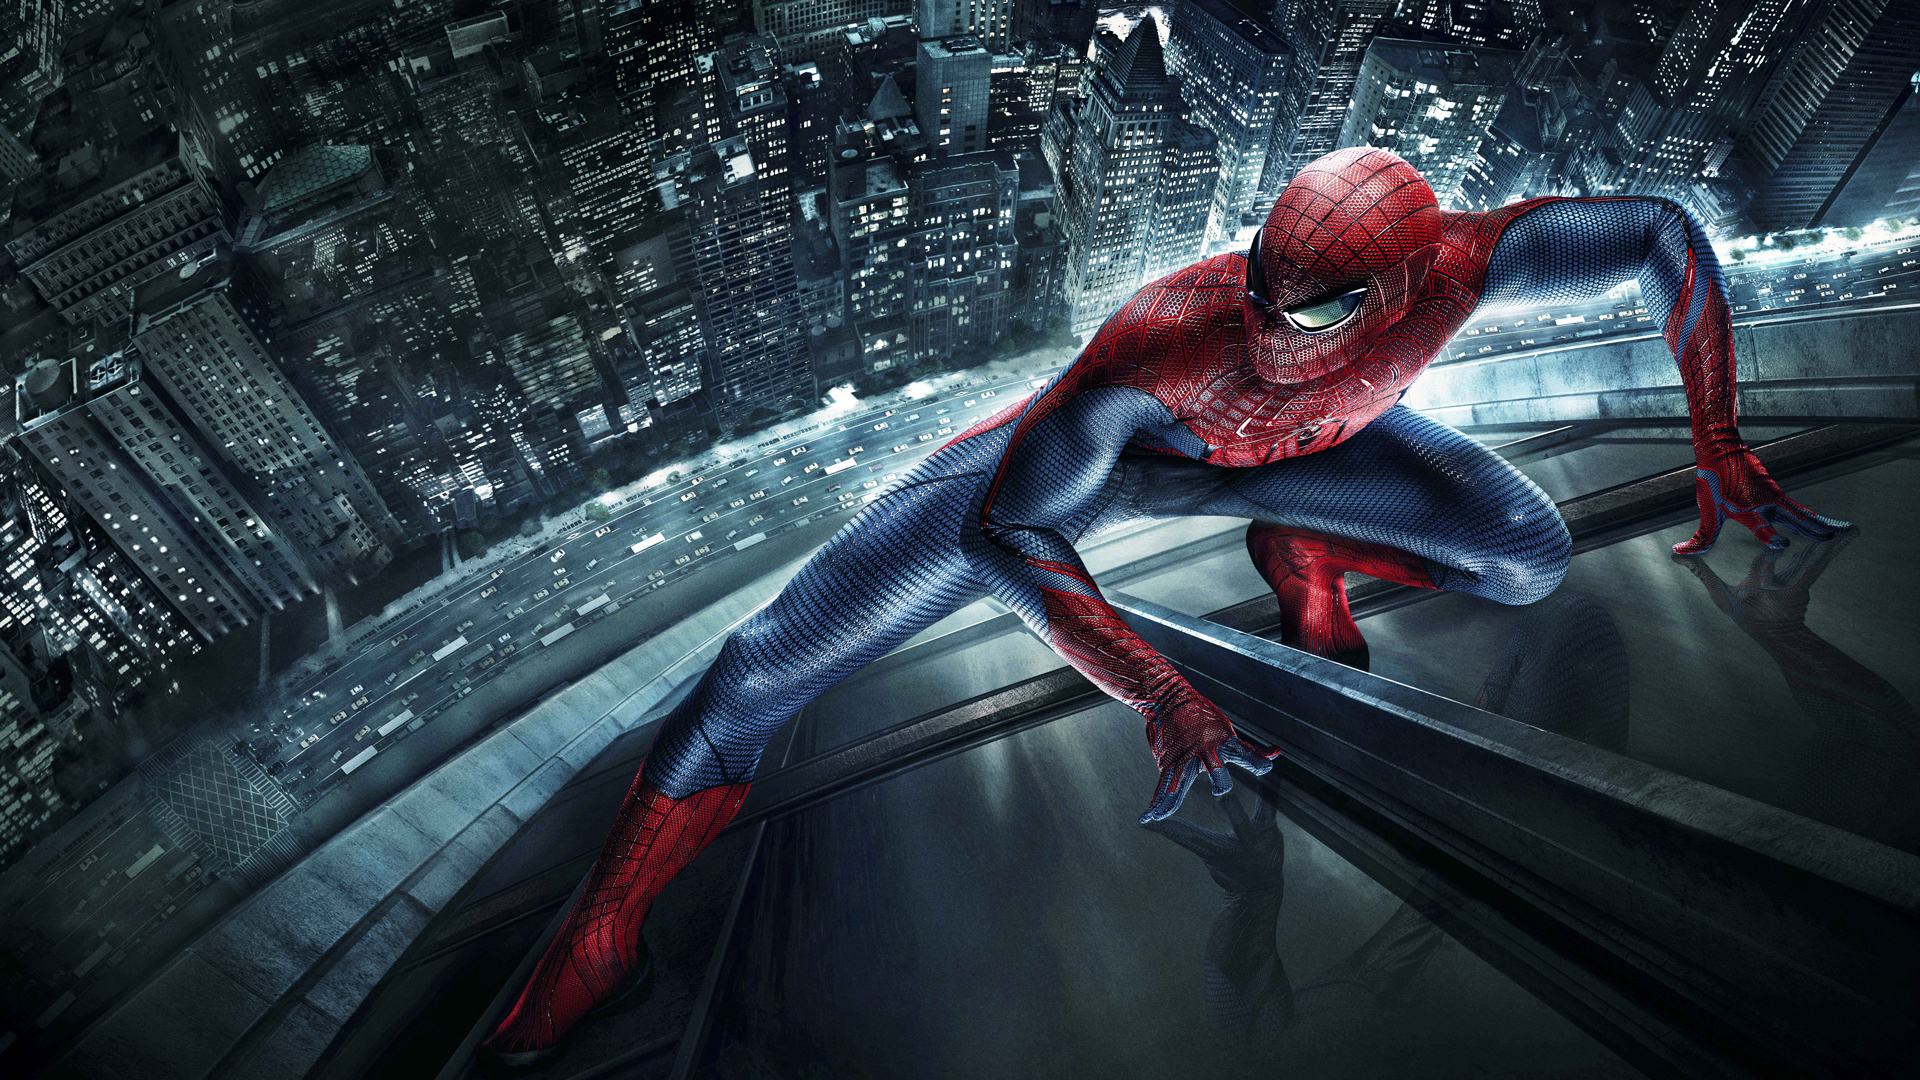 peter parker the amazing spider man full hd wallpaper 2012 1920x1080